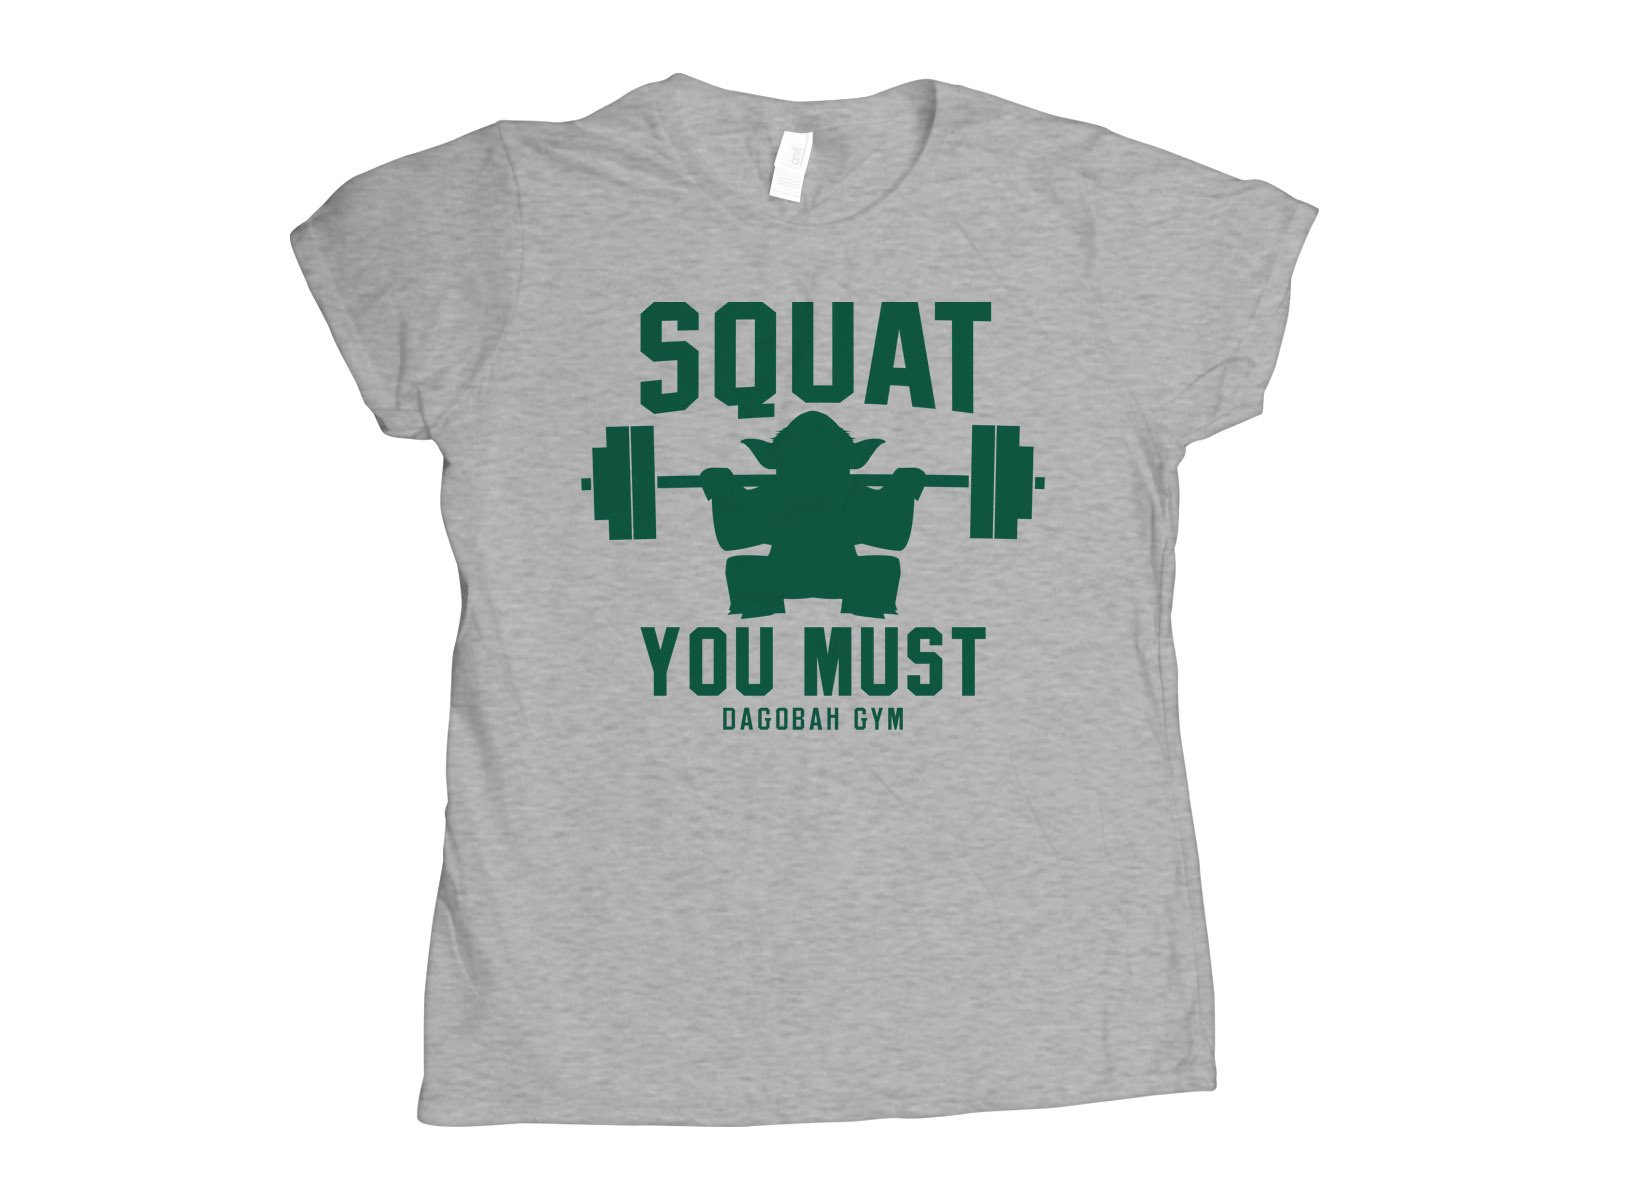 Squat You Must on Womens T-Shirt